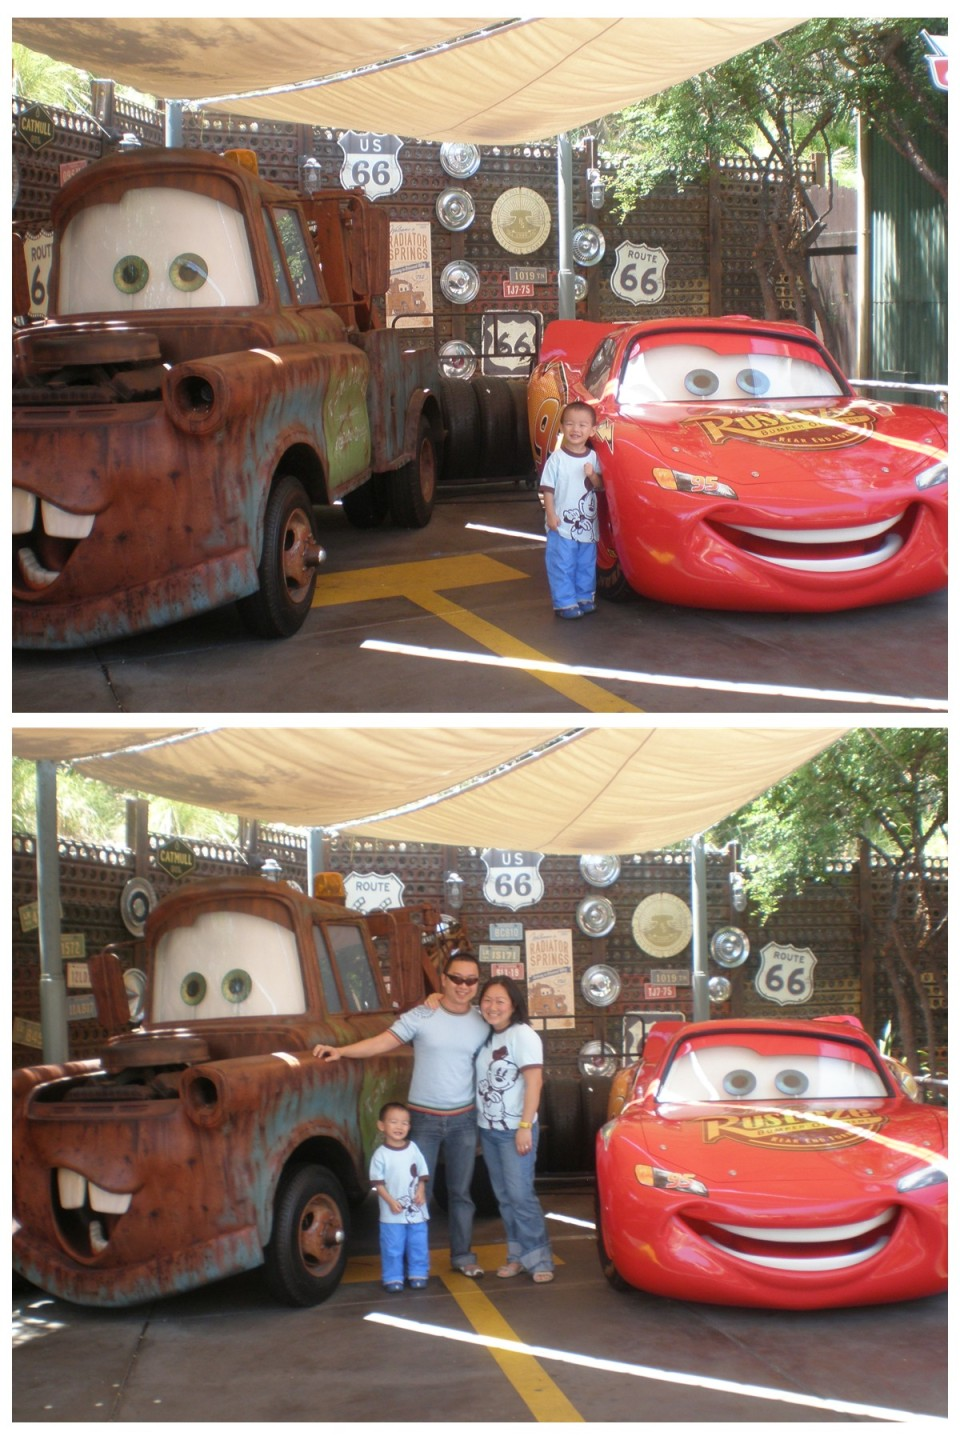 Lightning Mc Queen & Mater